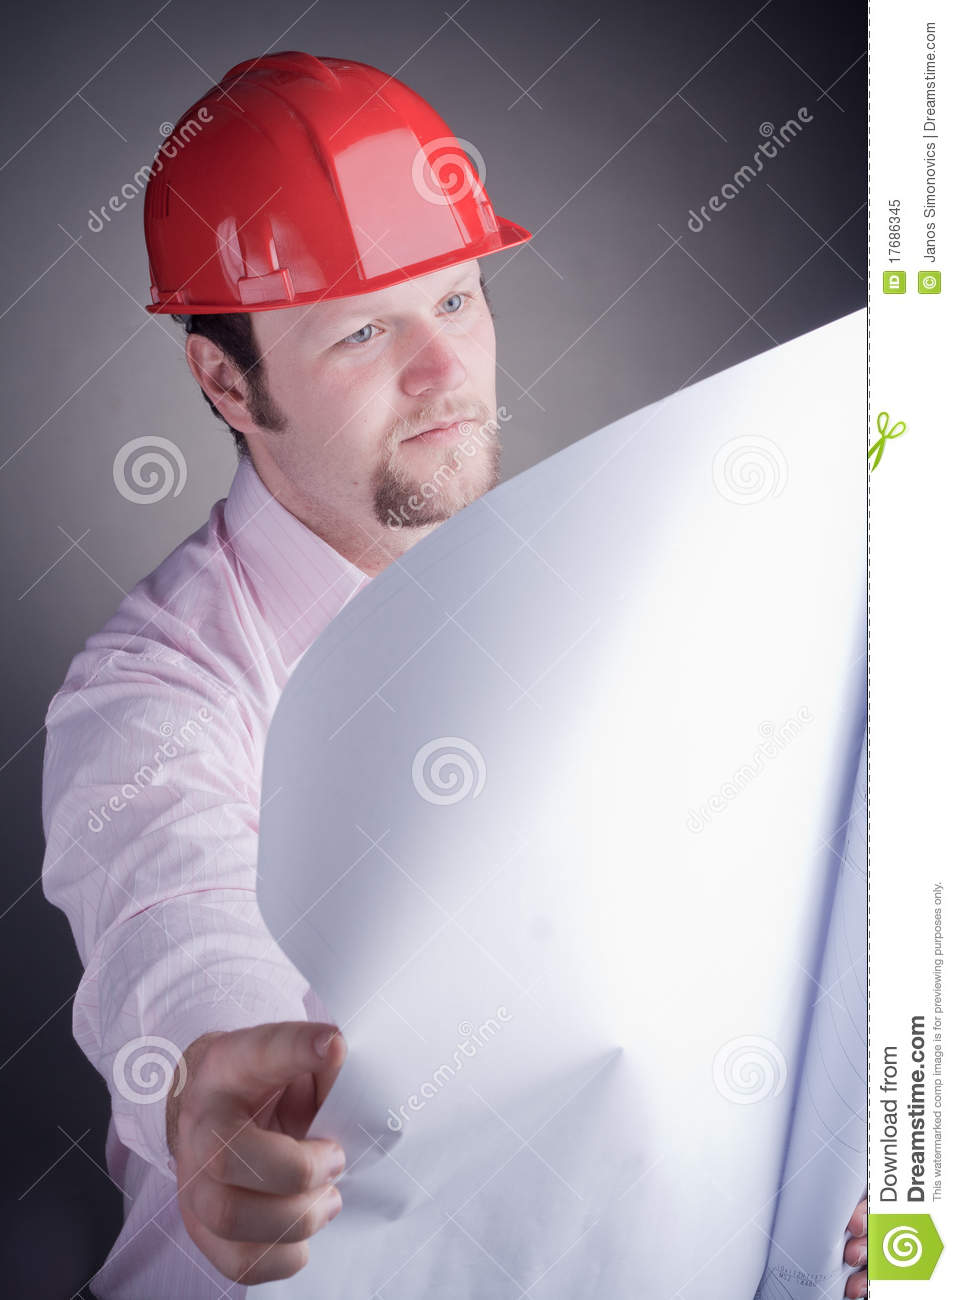 Construction engineer surveying the open project